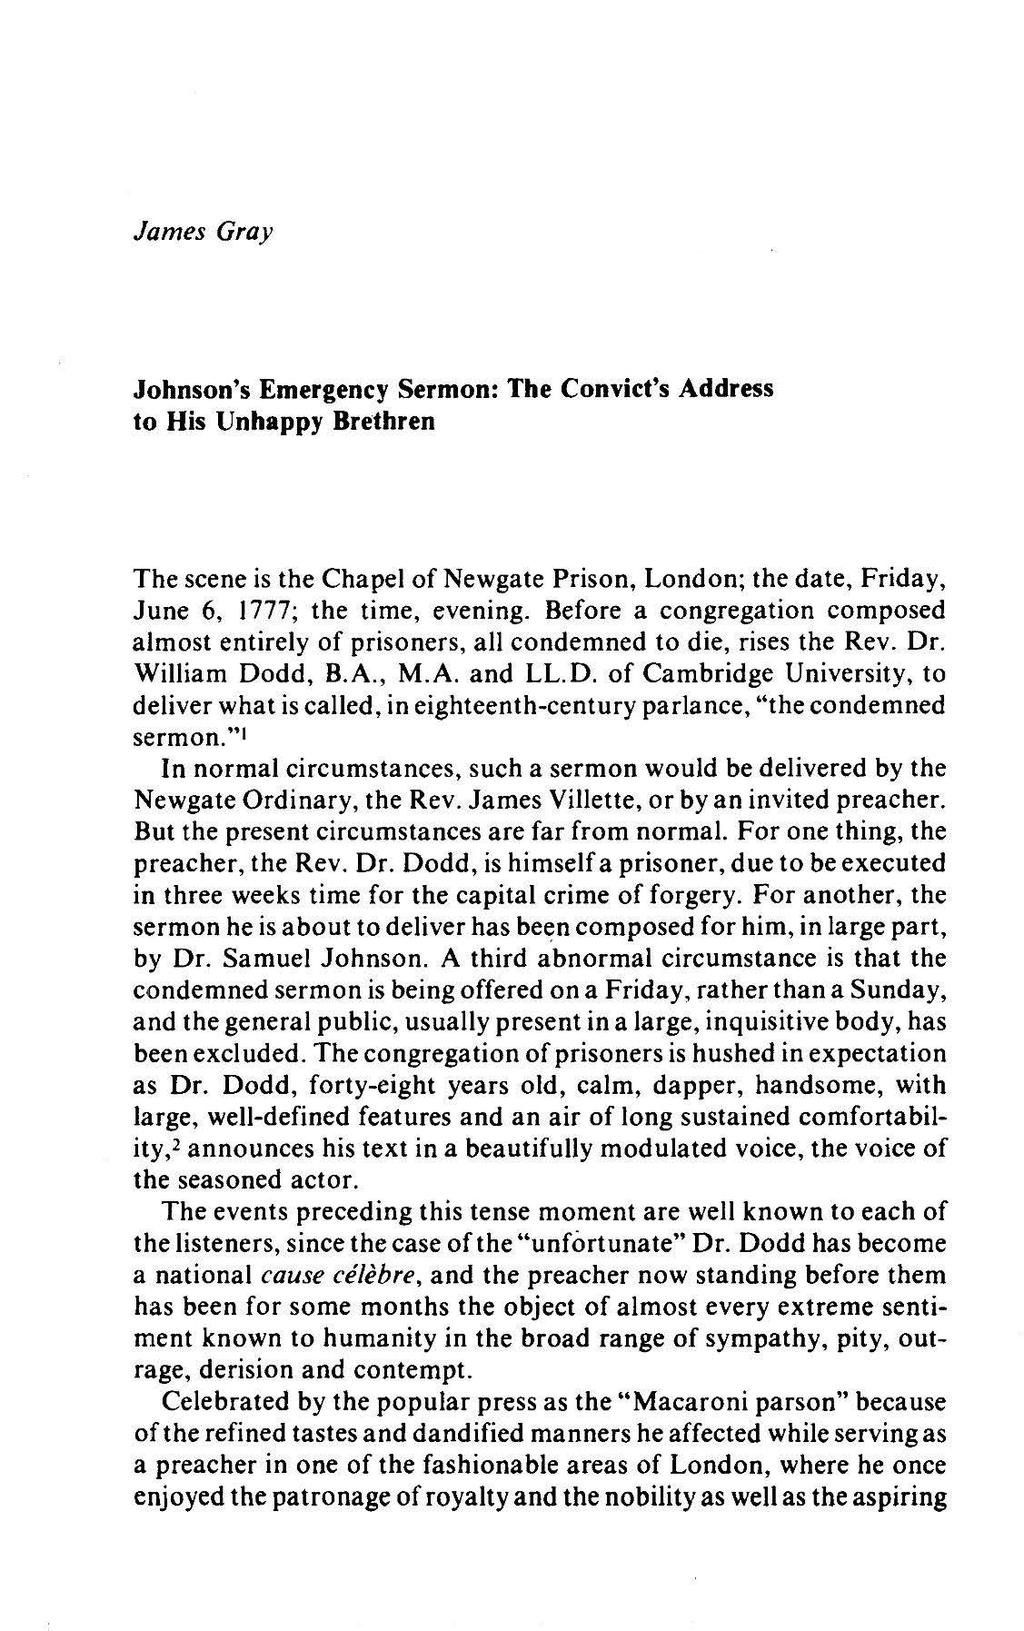 James Gray Johnson's Emergency Sermon: The Convict's Address to His Unhappy Brethren The scene is the Chapel of Newgate Prison, London; the date, Friday, June 6, 1777; the time, evening.